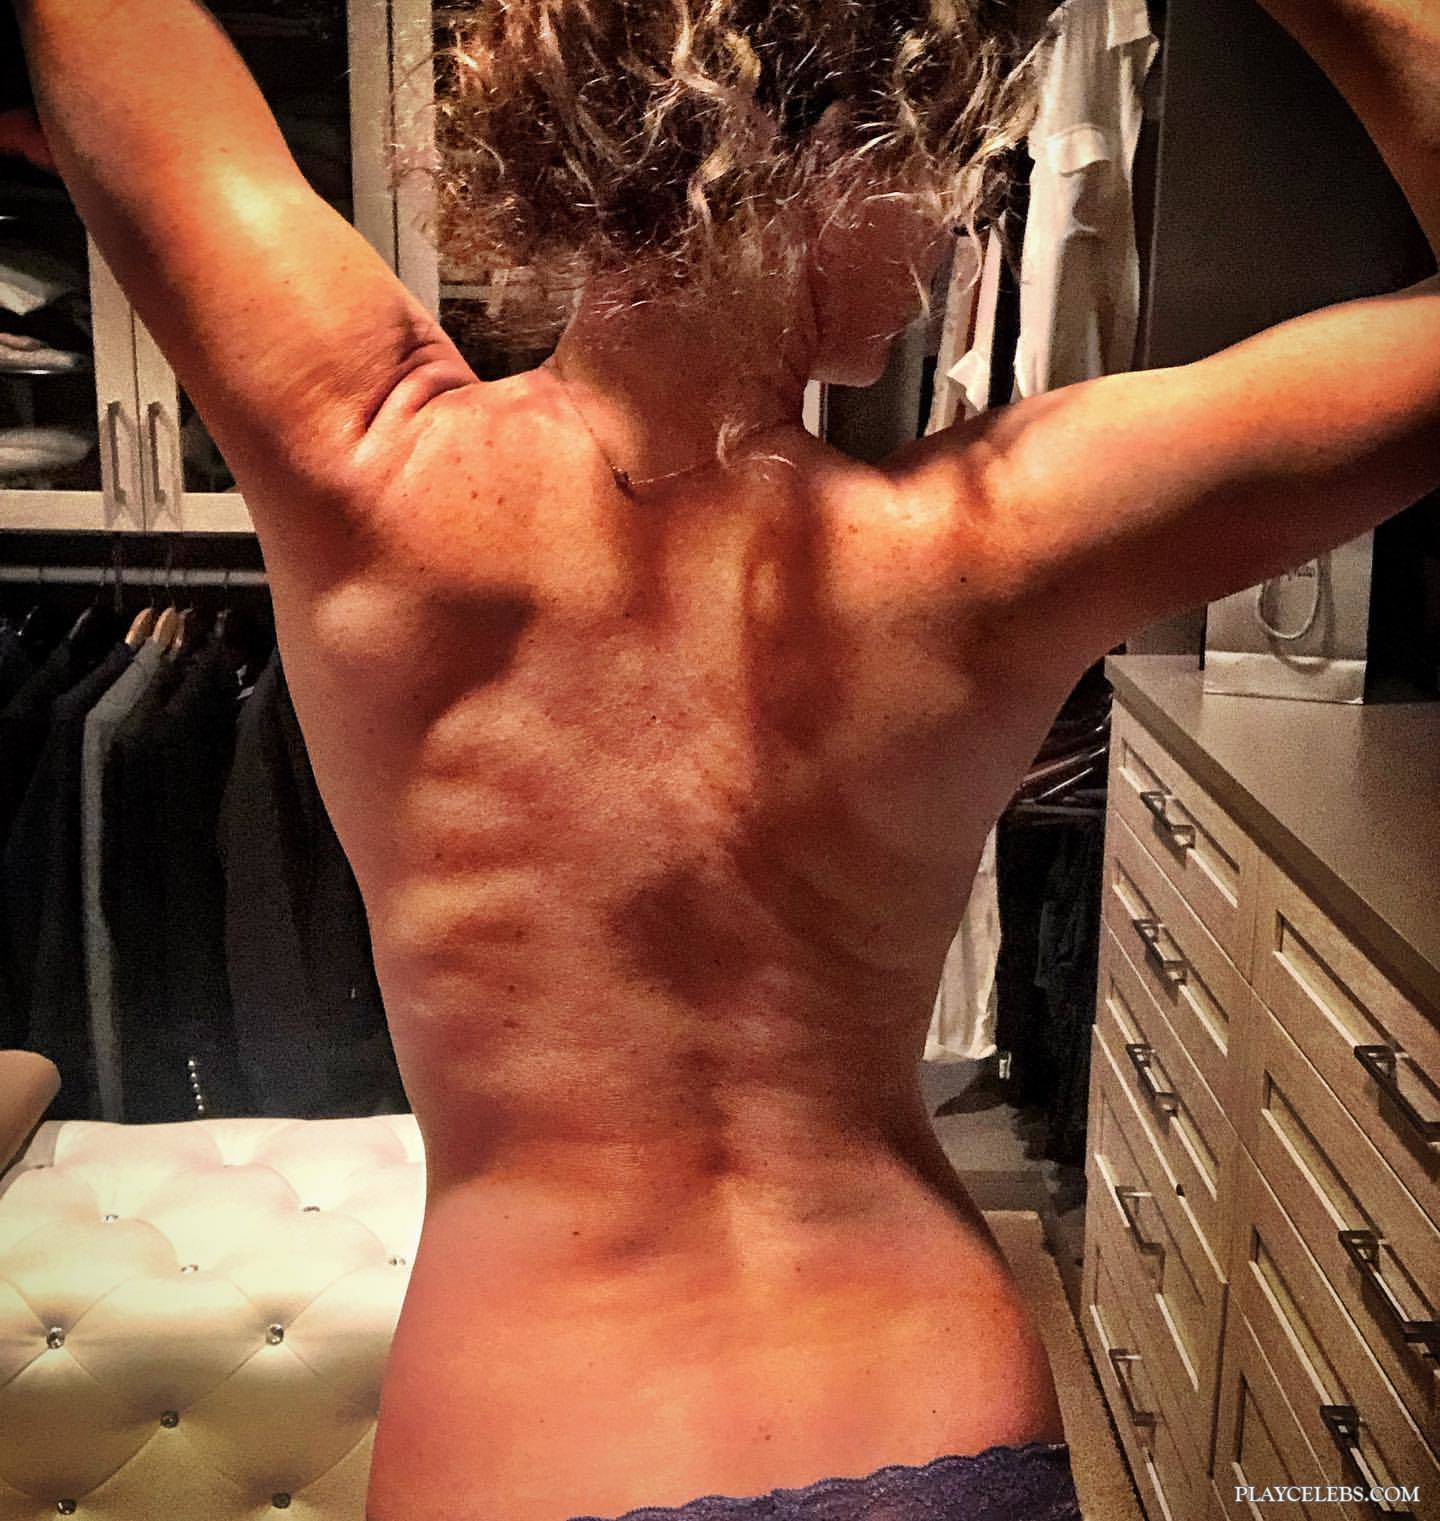 Dina Meyer Nude And Sexy Selfie Photos